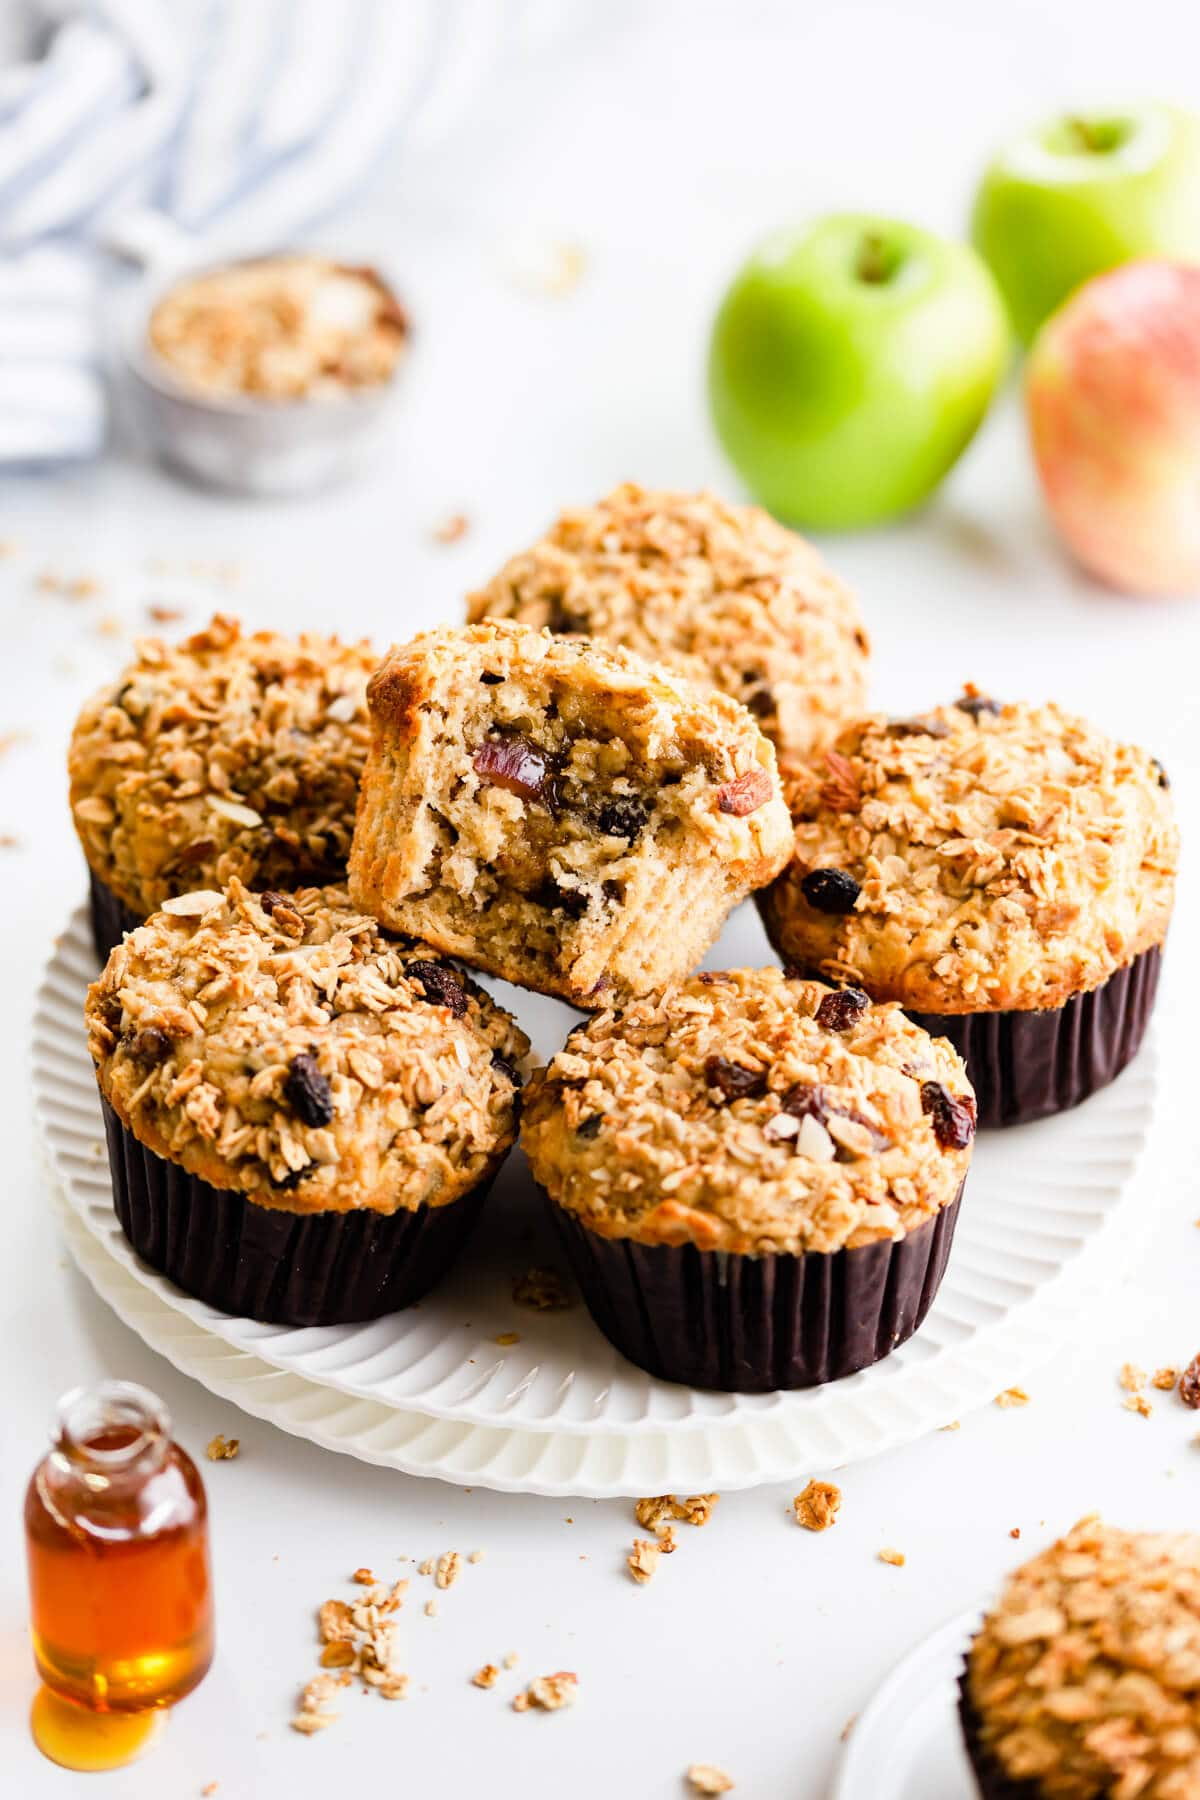 45 degree angle close up of apple and granola breakfast muffins on a plate